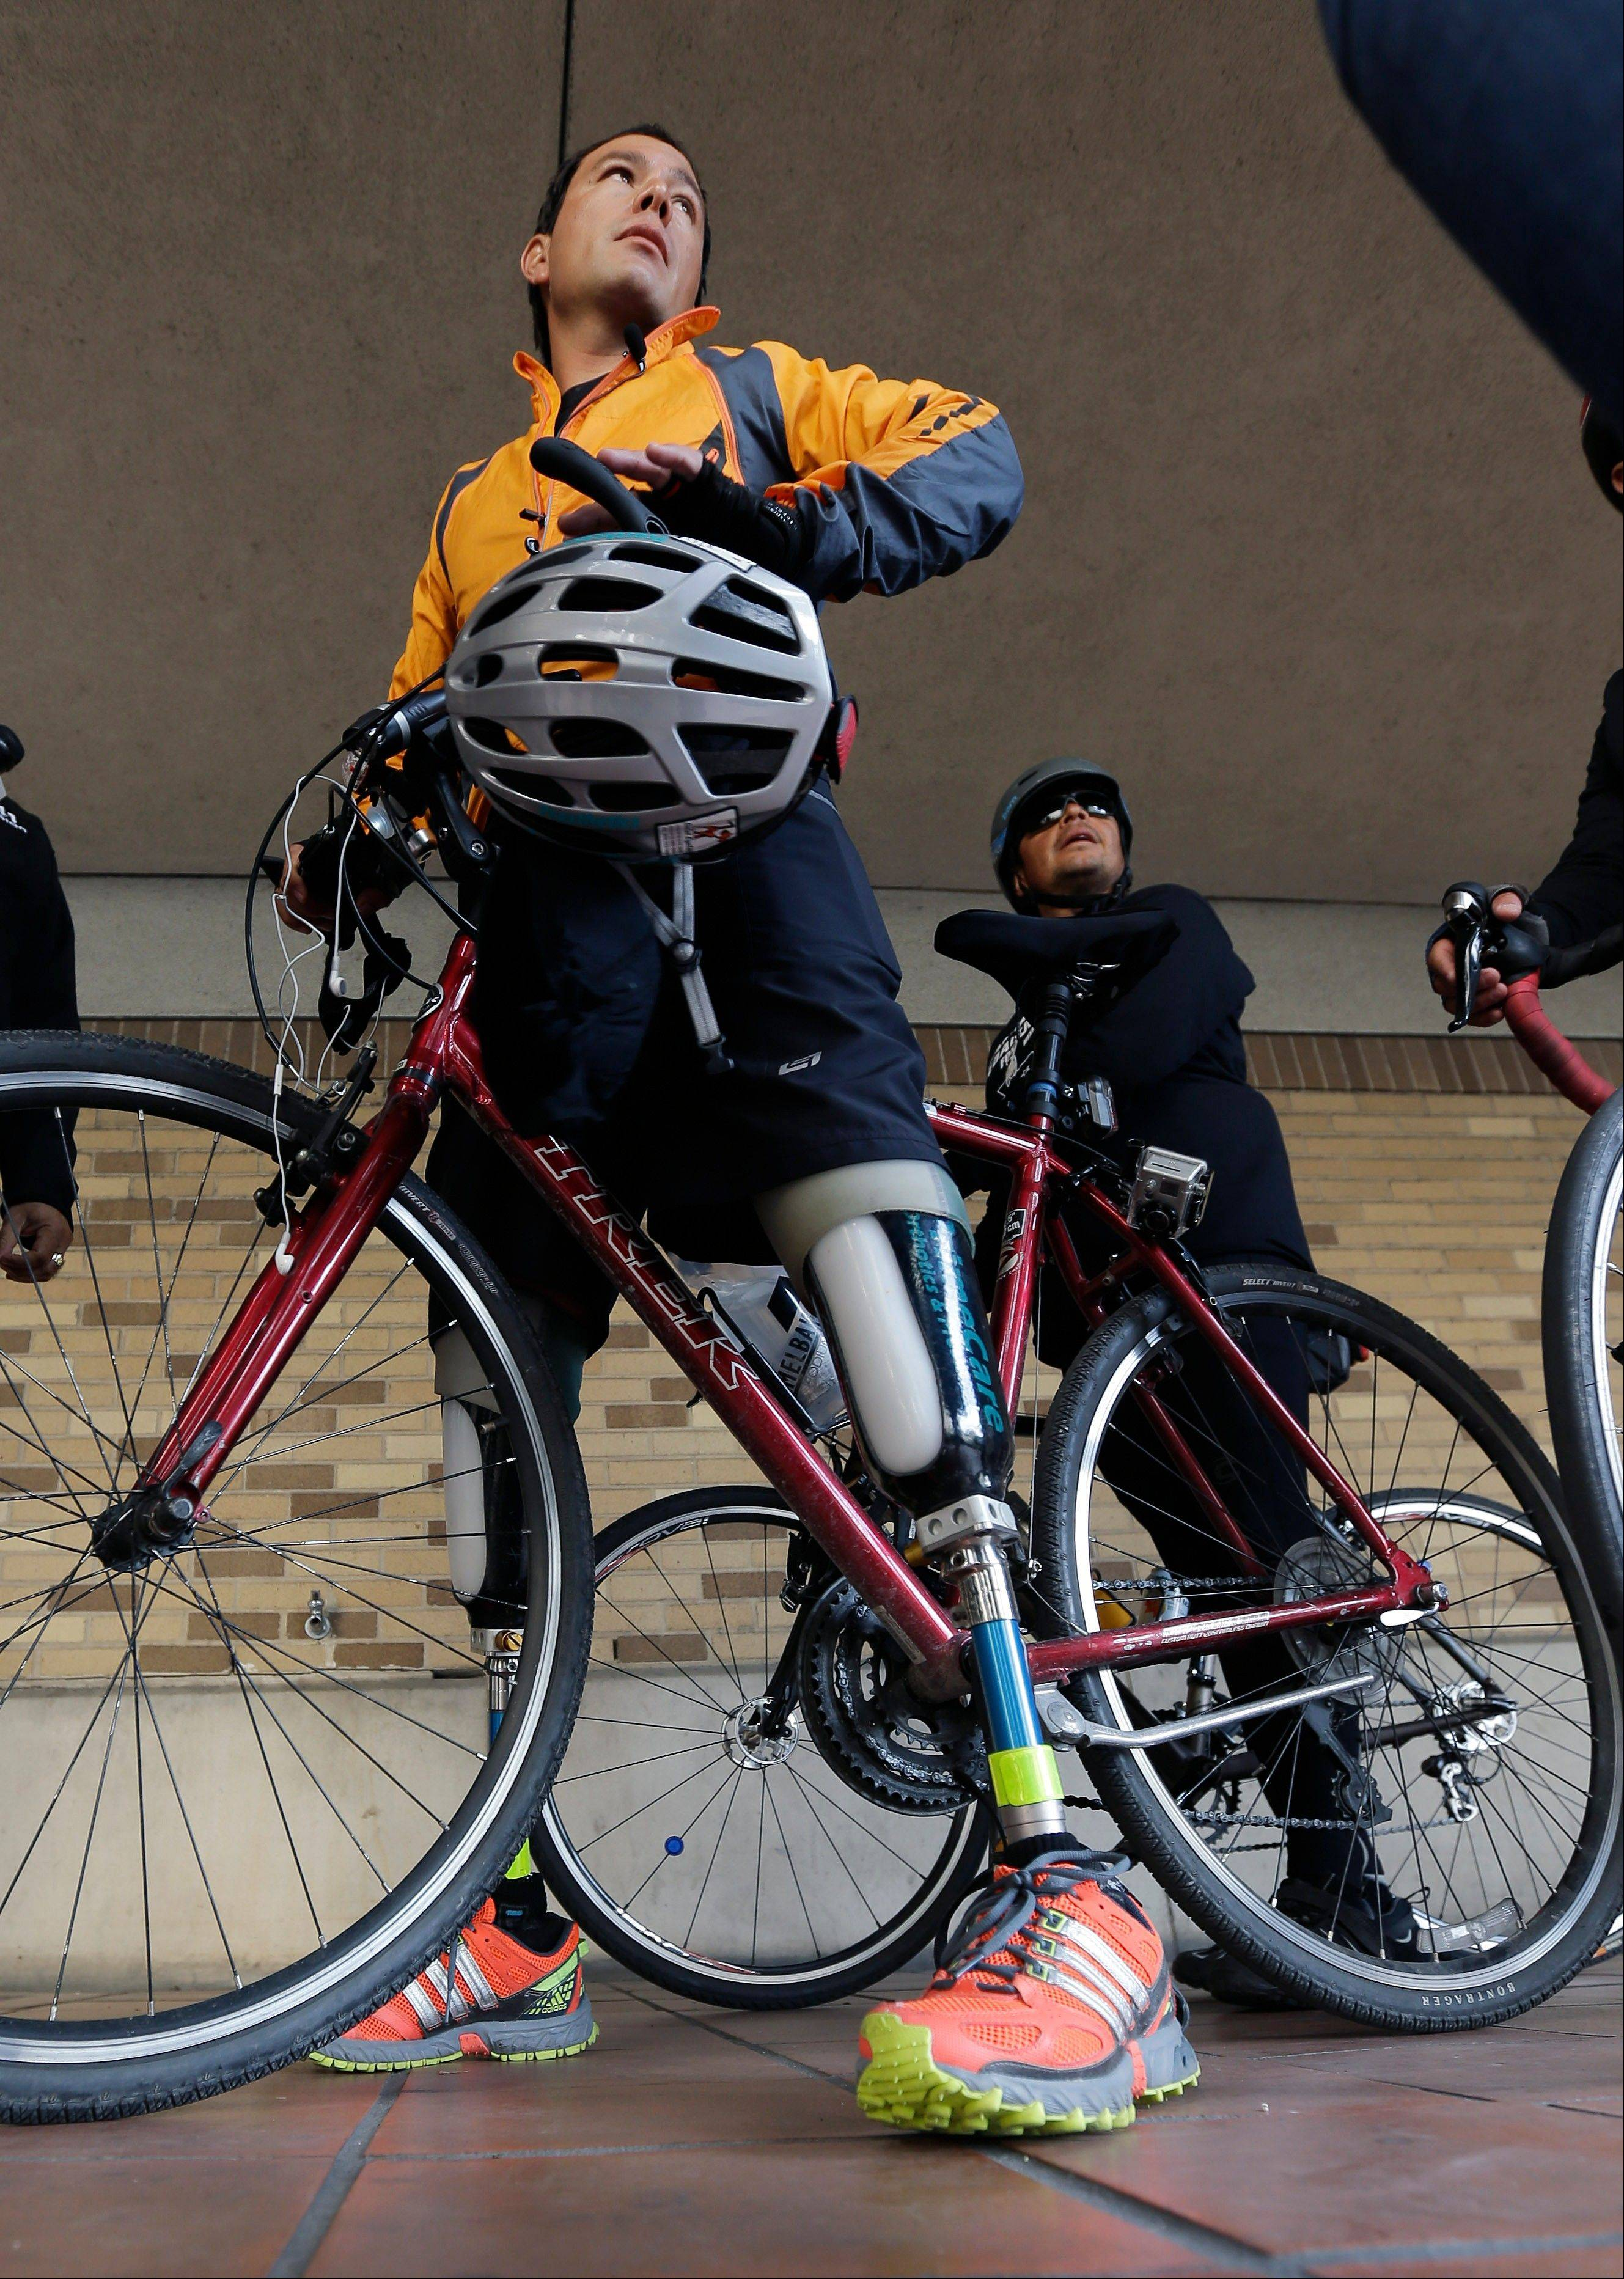 Cyclist Carlos Gutierrez, a double amputee, stands Thursday with his bike in San Antonio. Gutierrez is riding his bike from El Paso, Texas to Austin, Texas, to raise awareness on the situation of political asylum seekers.